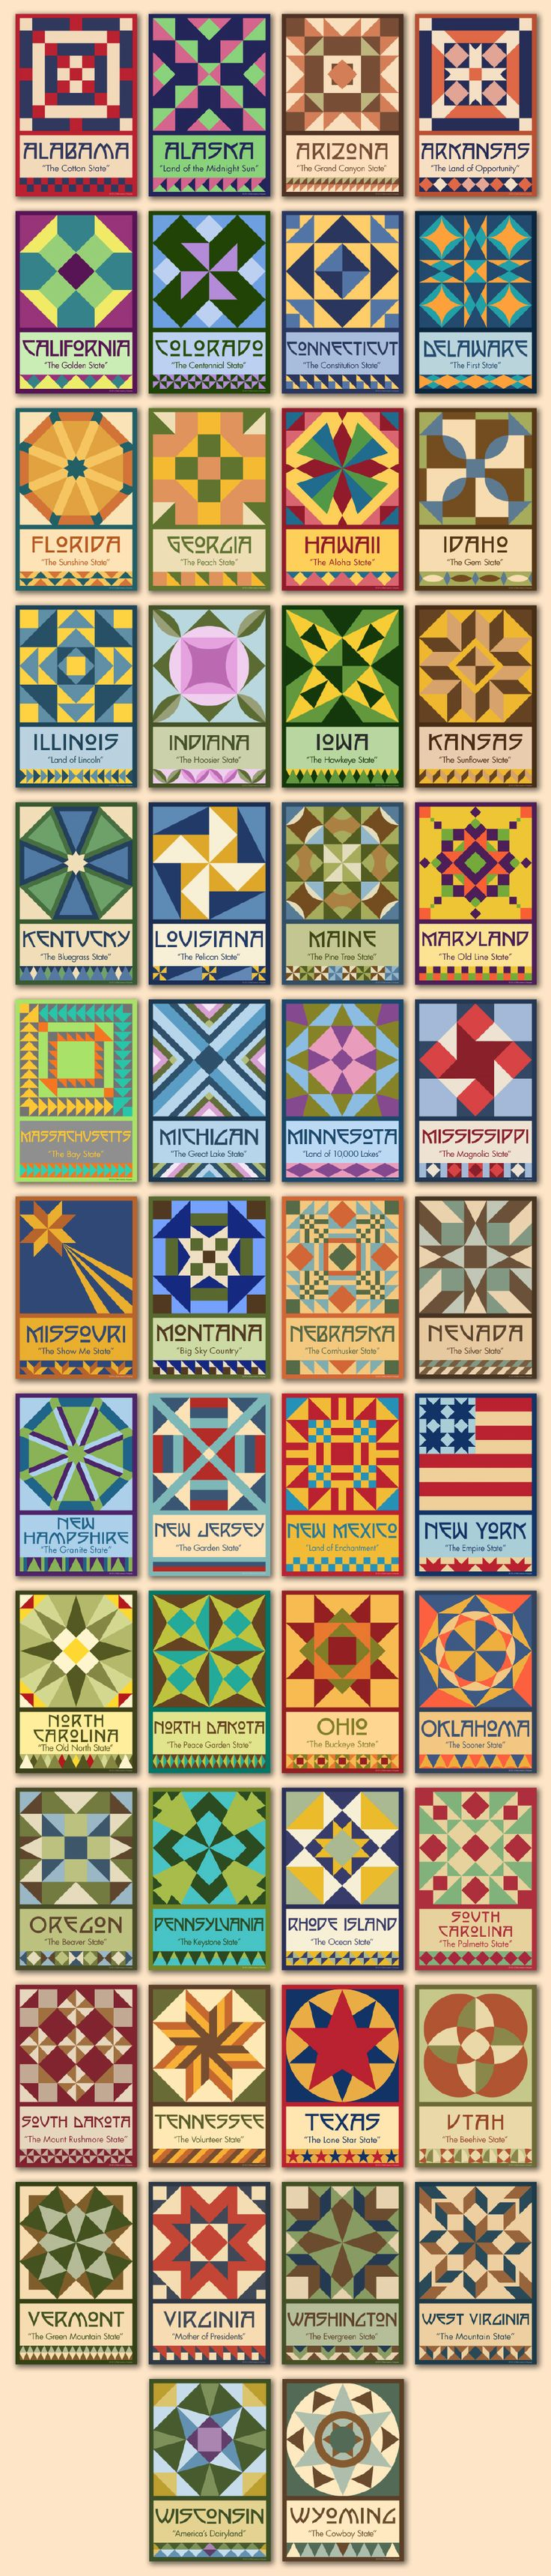 Susan Davis, owner of Olde American Antiques and American Quilt Blocks, has created a series of original quilt block designs for all 50 states. Available for purchase as a set of 50 quilt blocks at oldeamericaantiques.com.